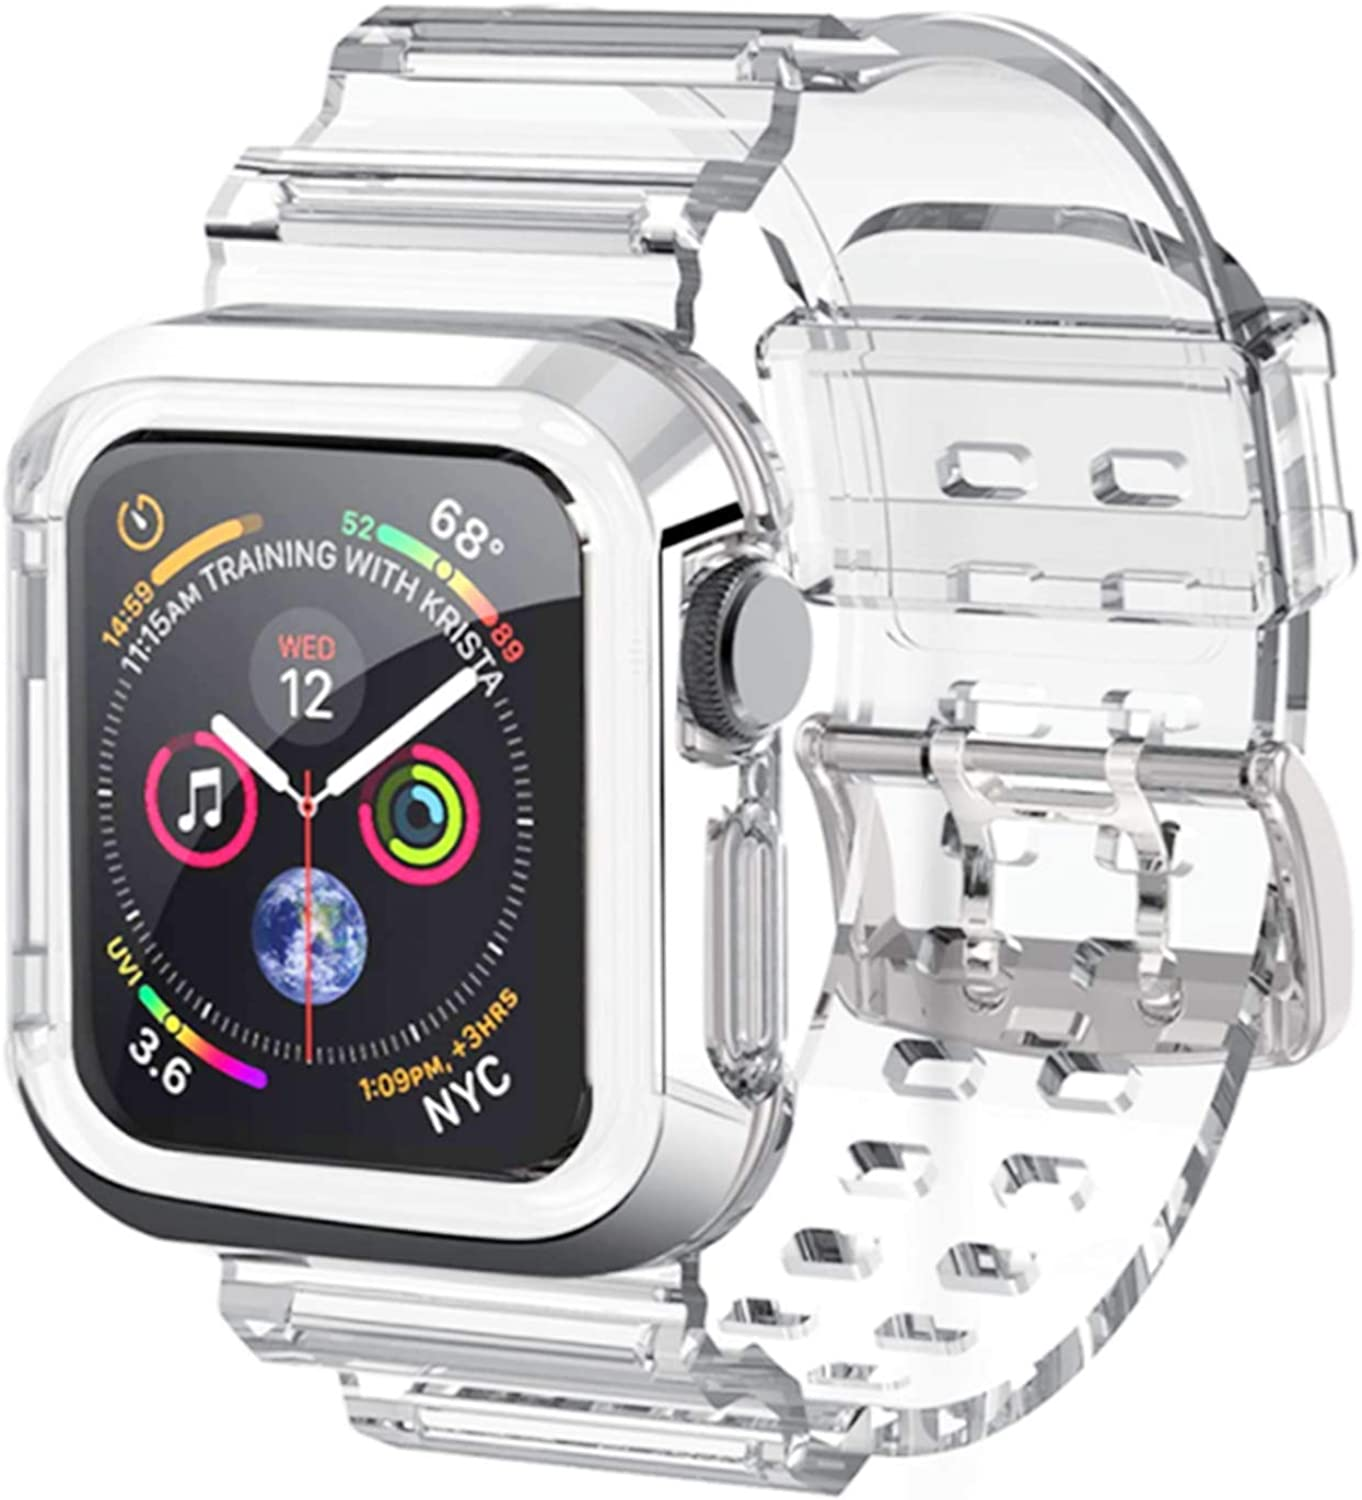 Kaihang Compatible for Apple Watch Band, Crystal Clear iWatch Band Strap with Rugged Bumper Case 38mm 40mm Bands for Apple Watch Series SE/6/5/4/3/2/1